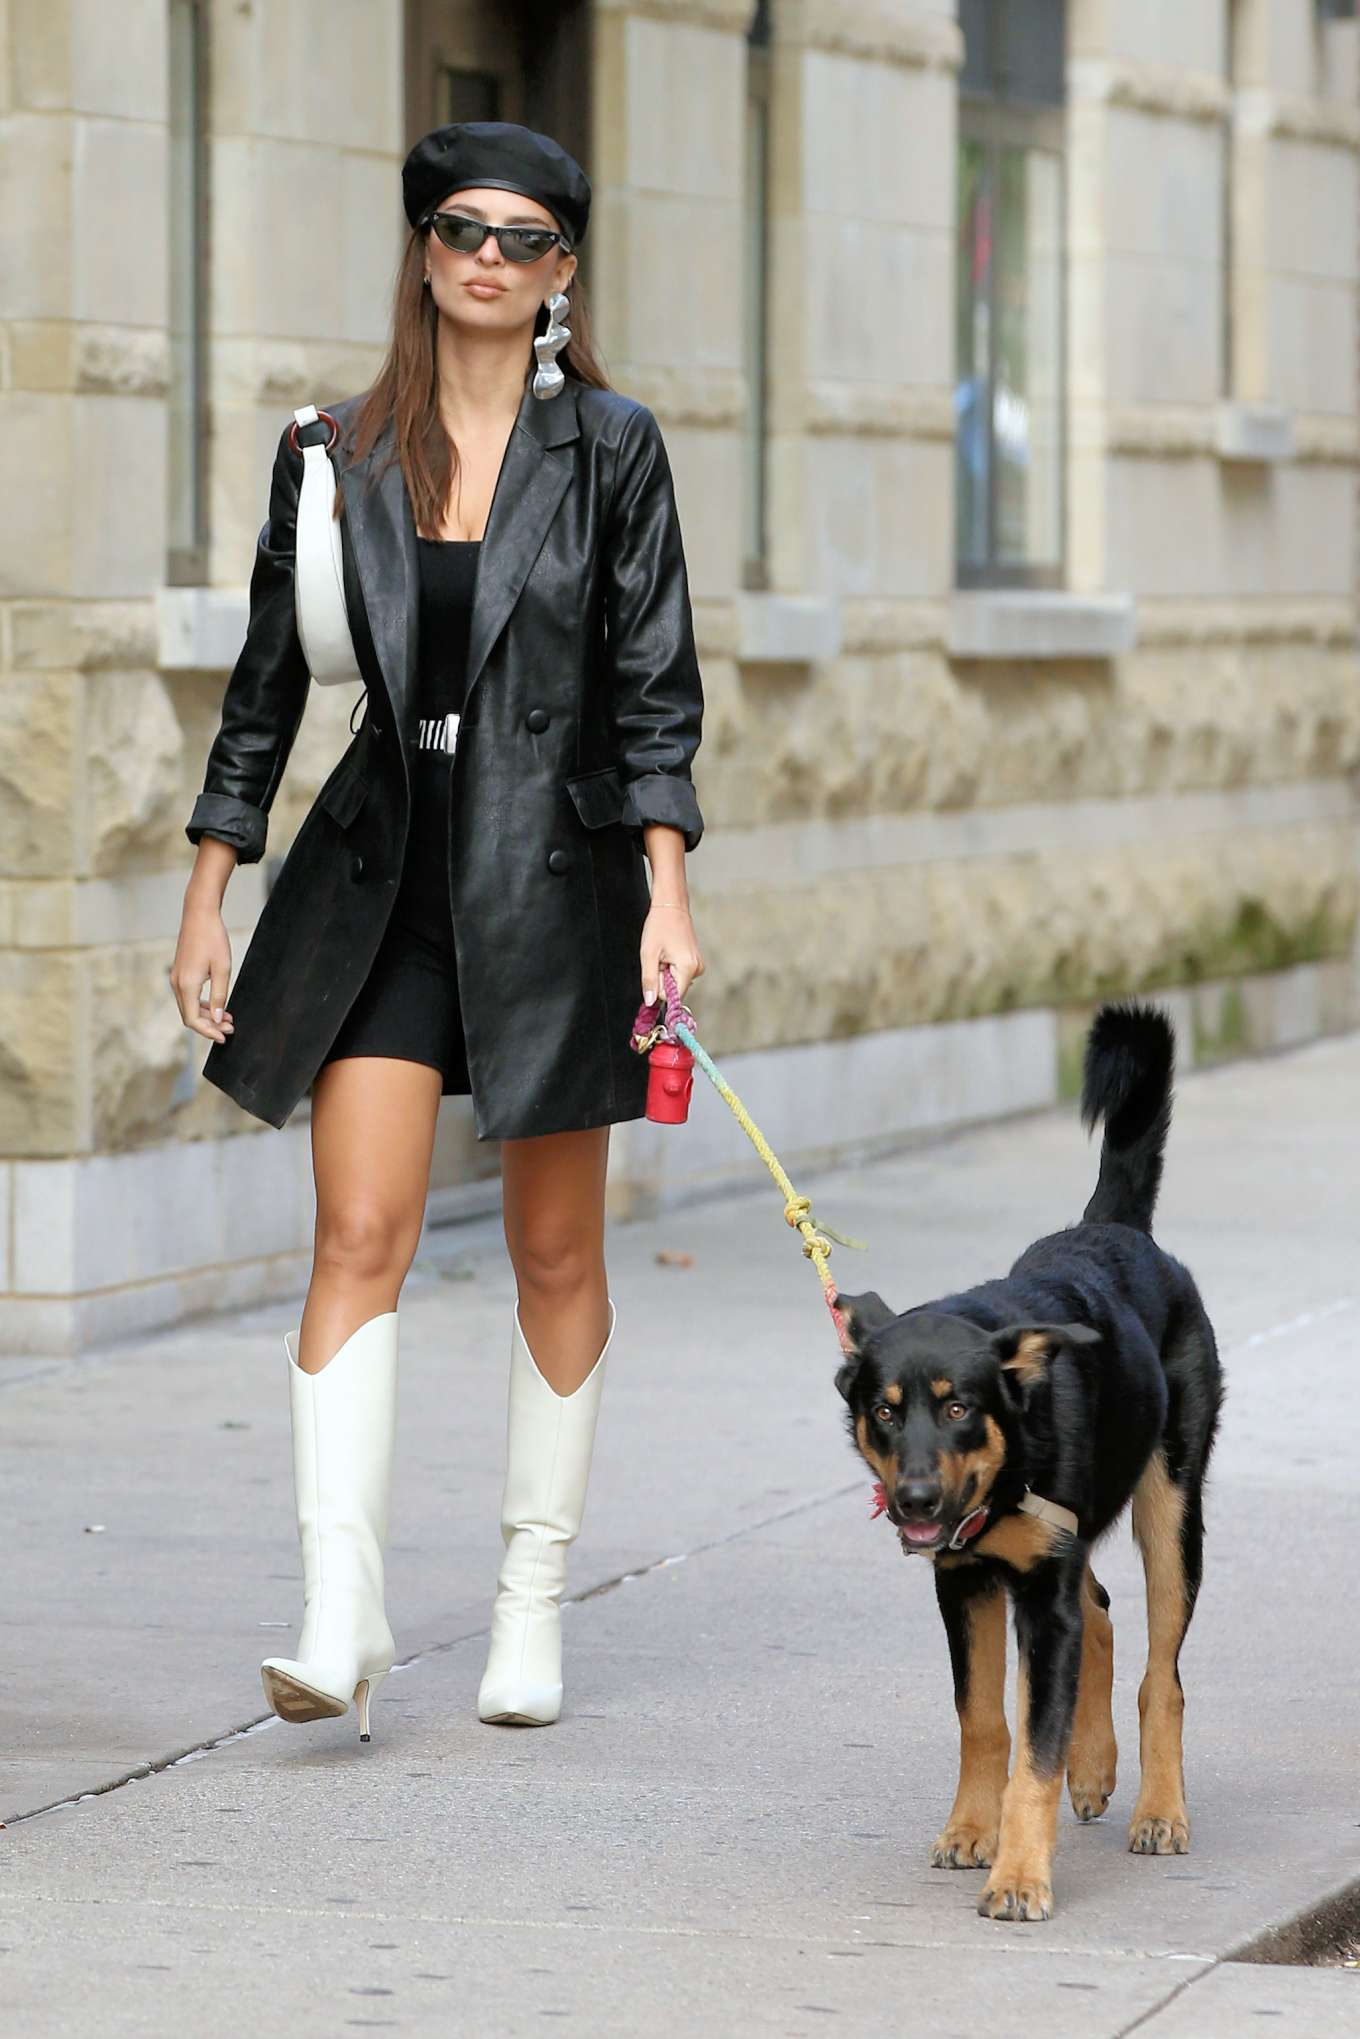 Emily Ratajkowski 2019 Pics in White Boots and Black Leather Coat – Walking her dog Colombo in New York 01